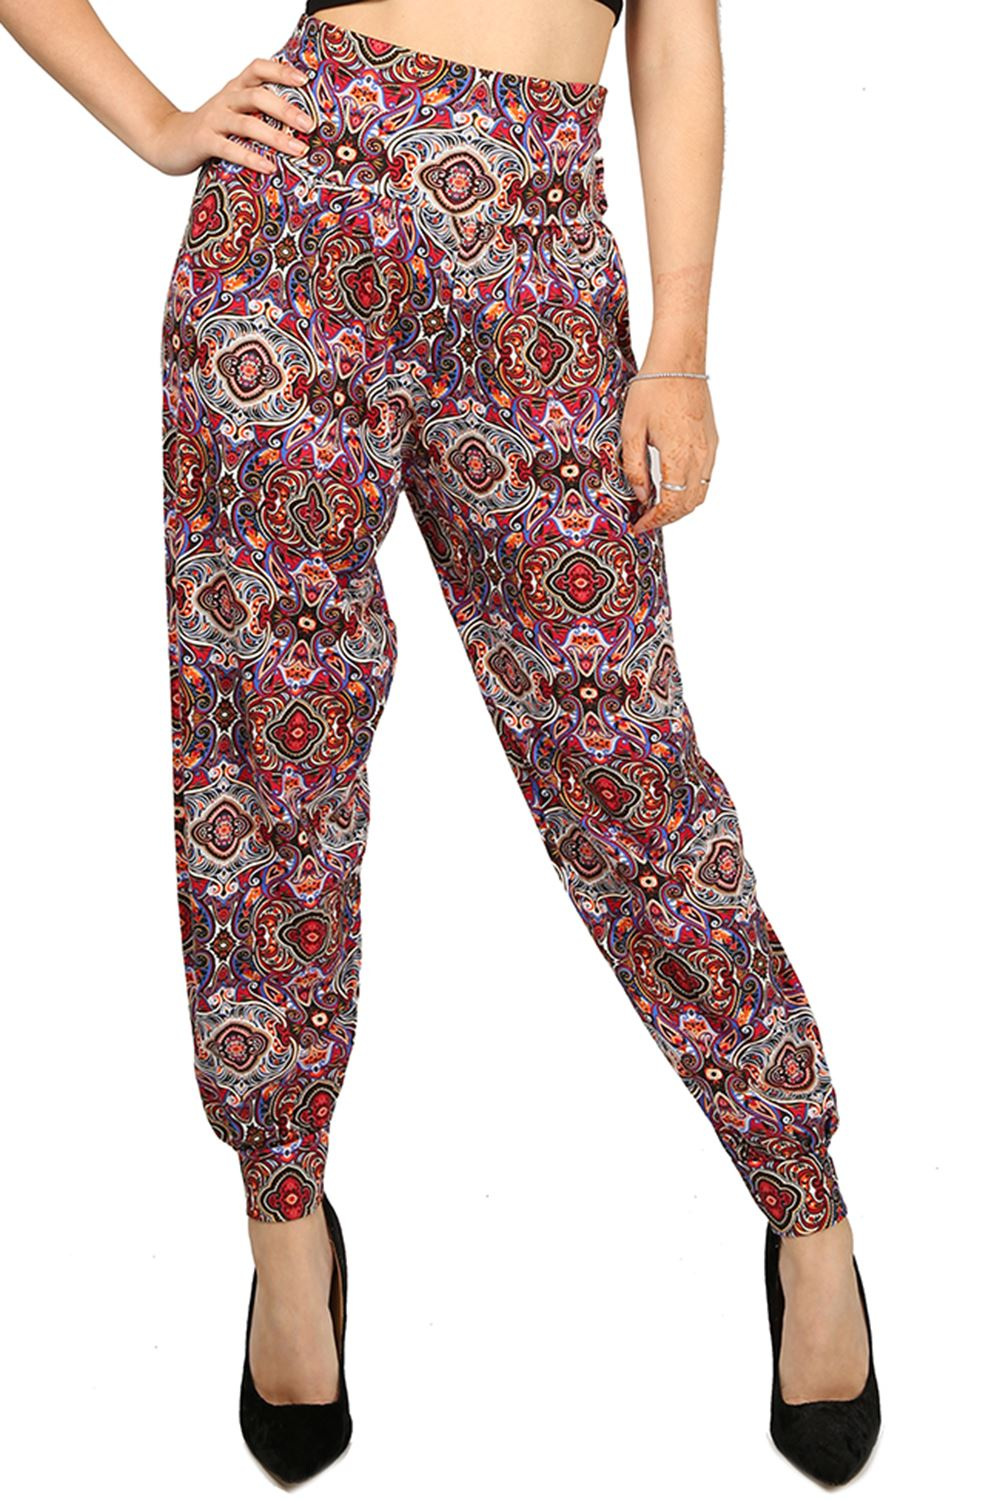 Innovative Womens Ladies Tropical Printed Ali Baba Bottoms Harem Pants Trousers Leggings